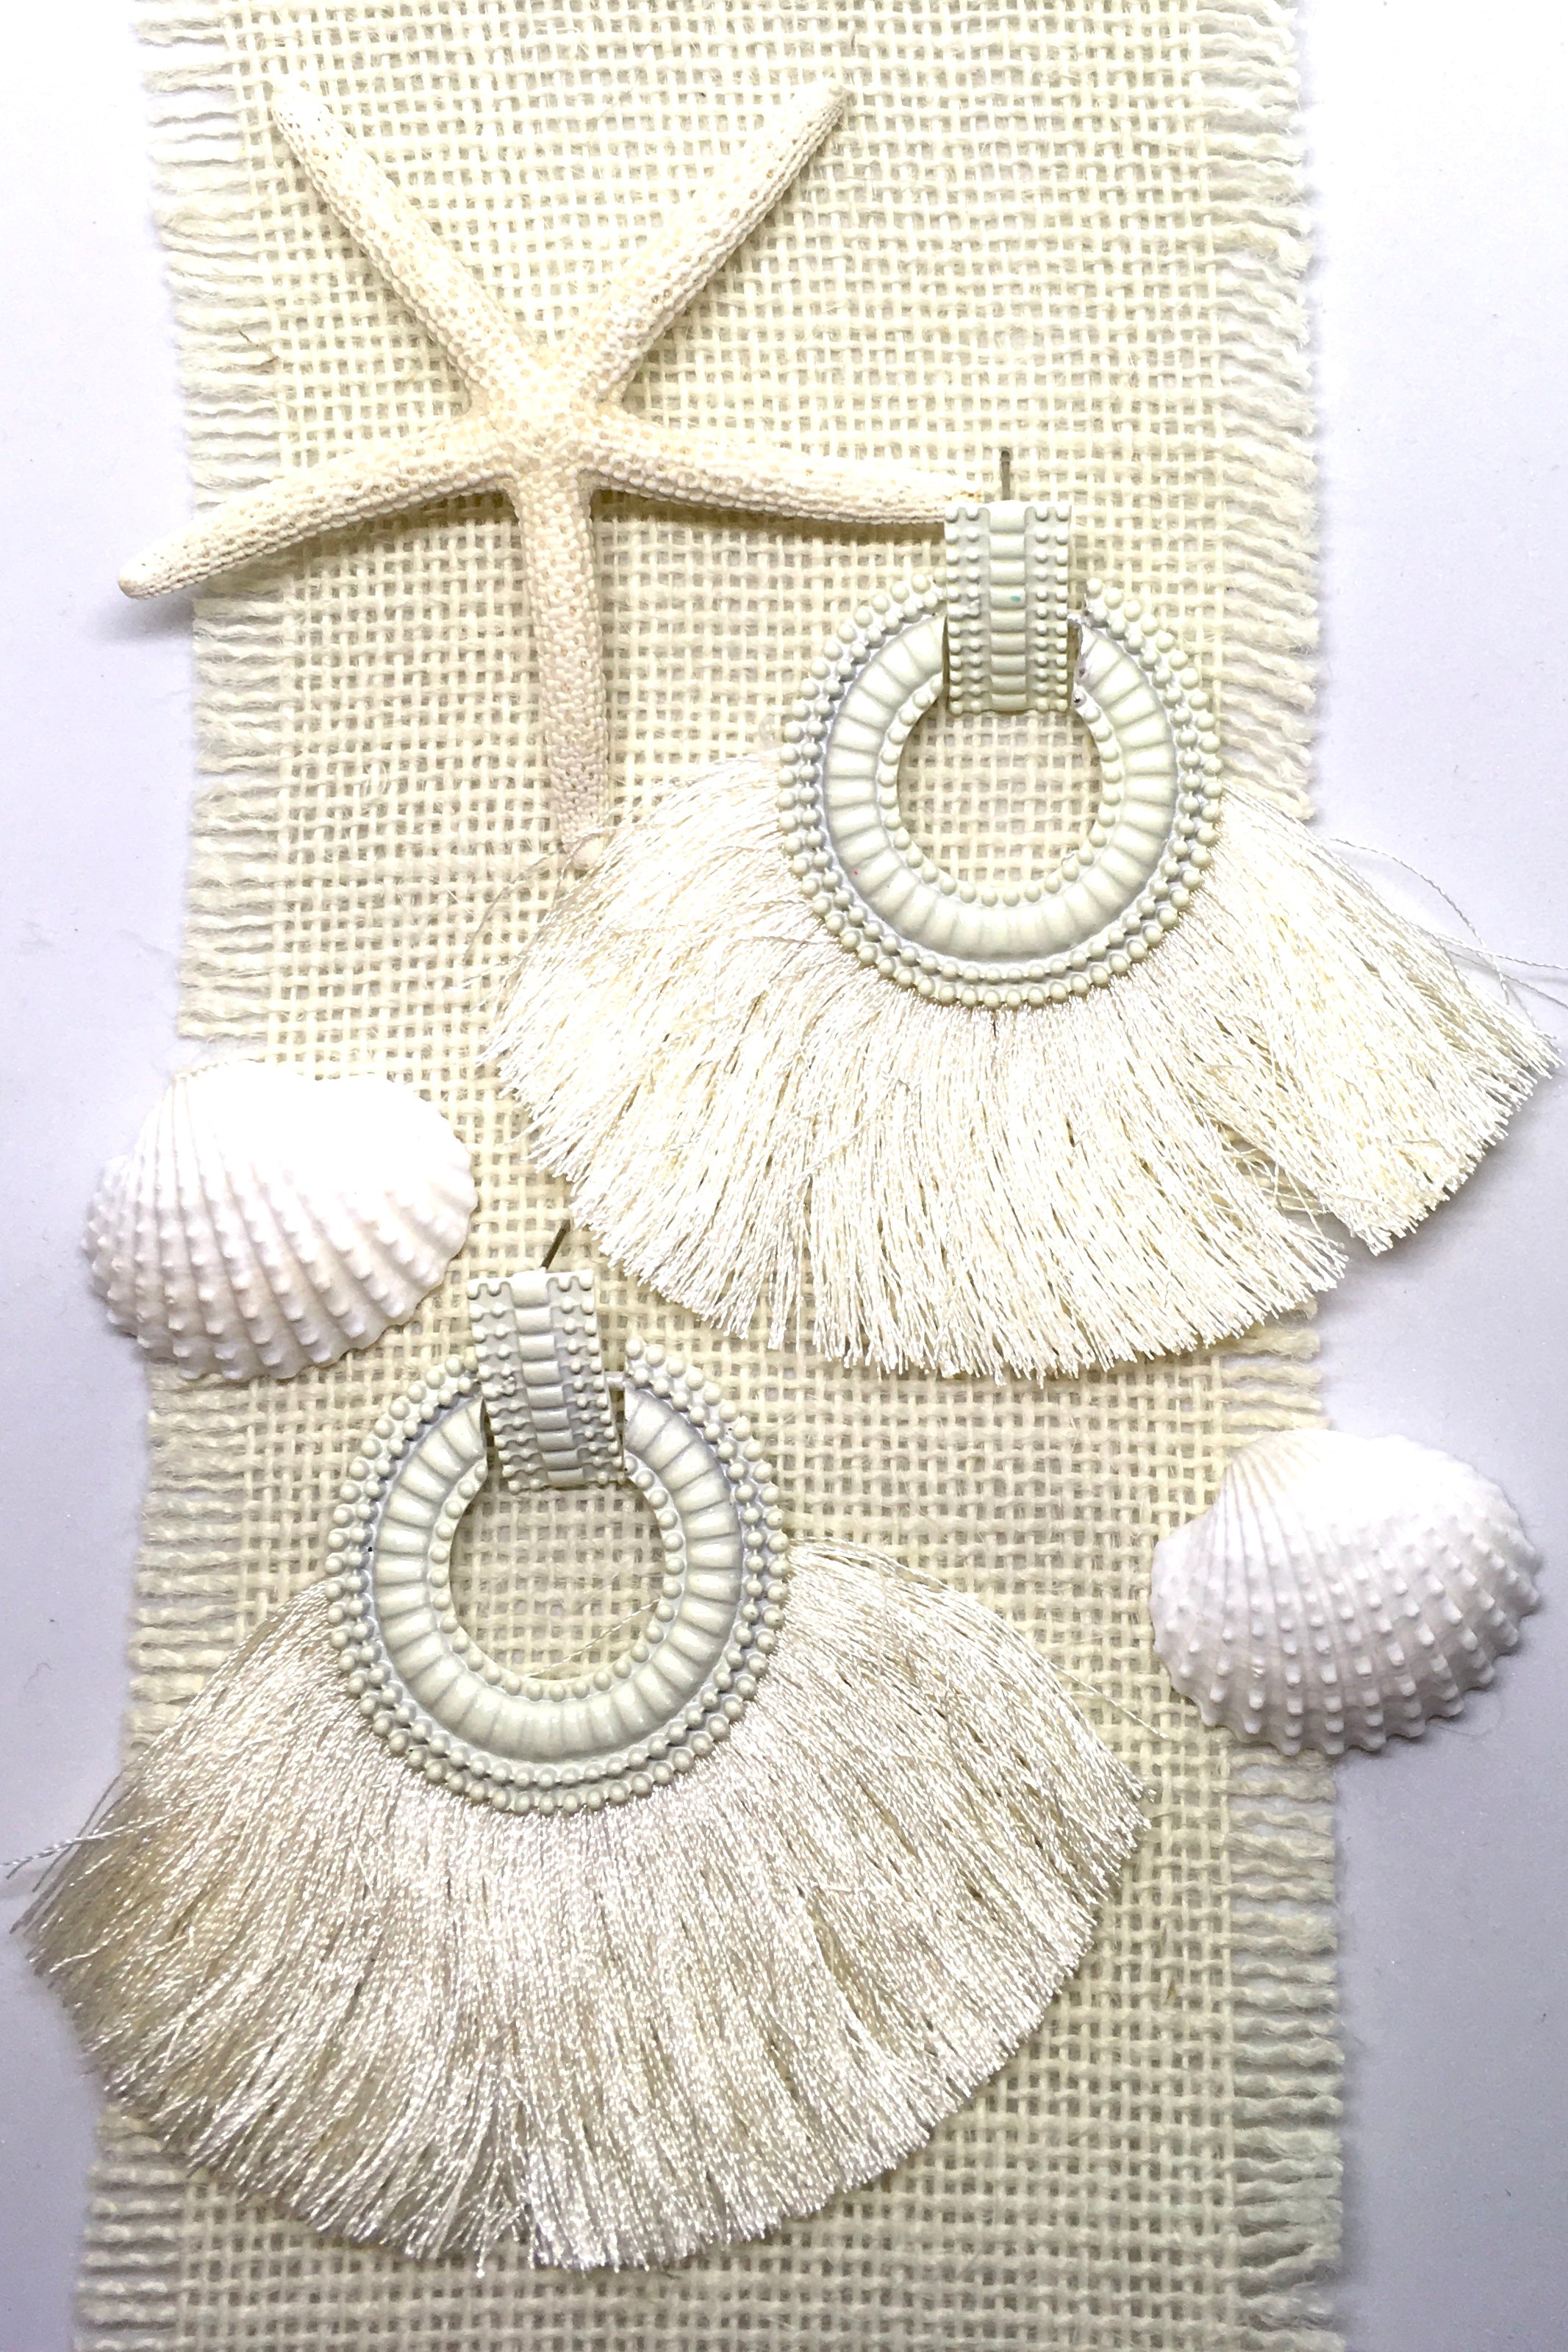 Earrings Adore with Cream Fringe, tassel earrings for summer